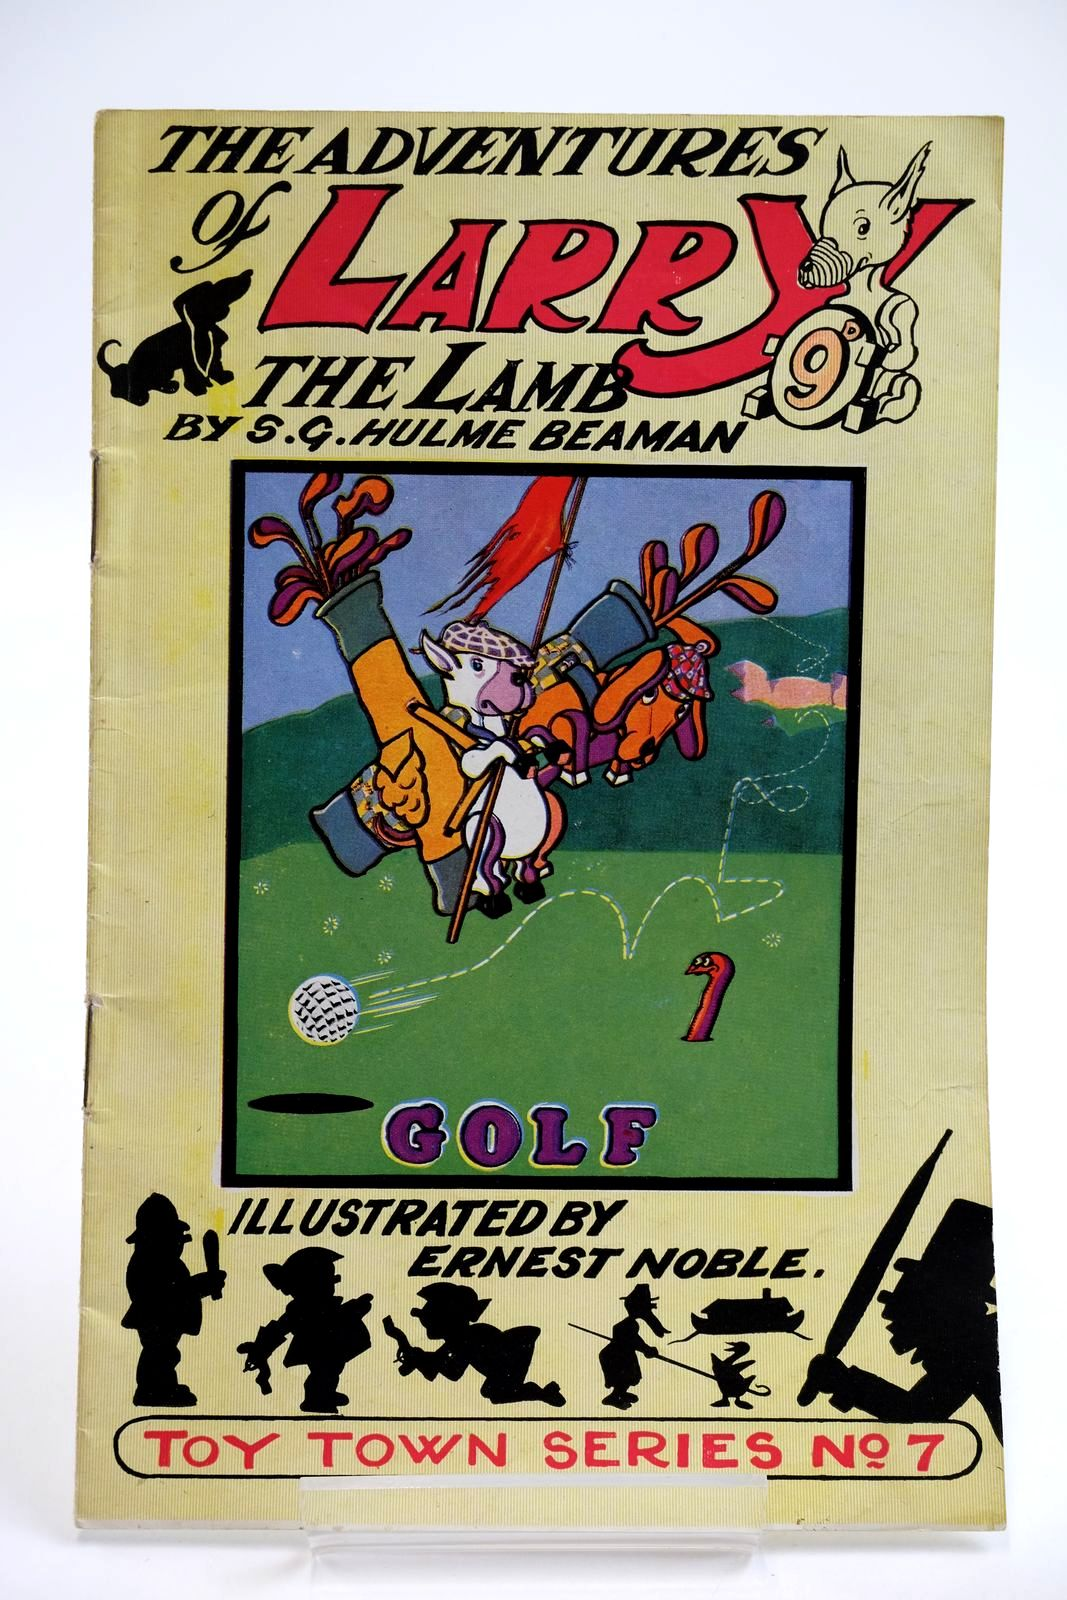 Photo of THE ADVENTURES OF LARRY THE LAMB - GOLF (TOYTOWN RULES) written by Beaman, S.G. Hulme illustrated by Noble, Ernest published by George Lapworth & Co Ltd. (STOCK CODE: 2133900)  for sale by Stella & Rose's Books